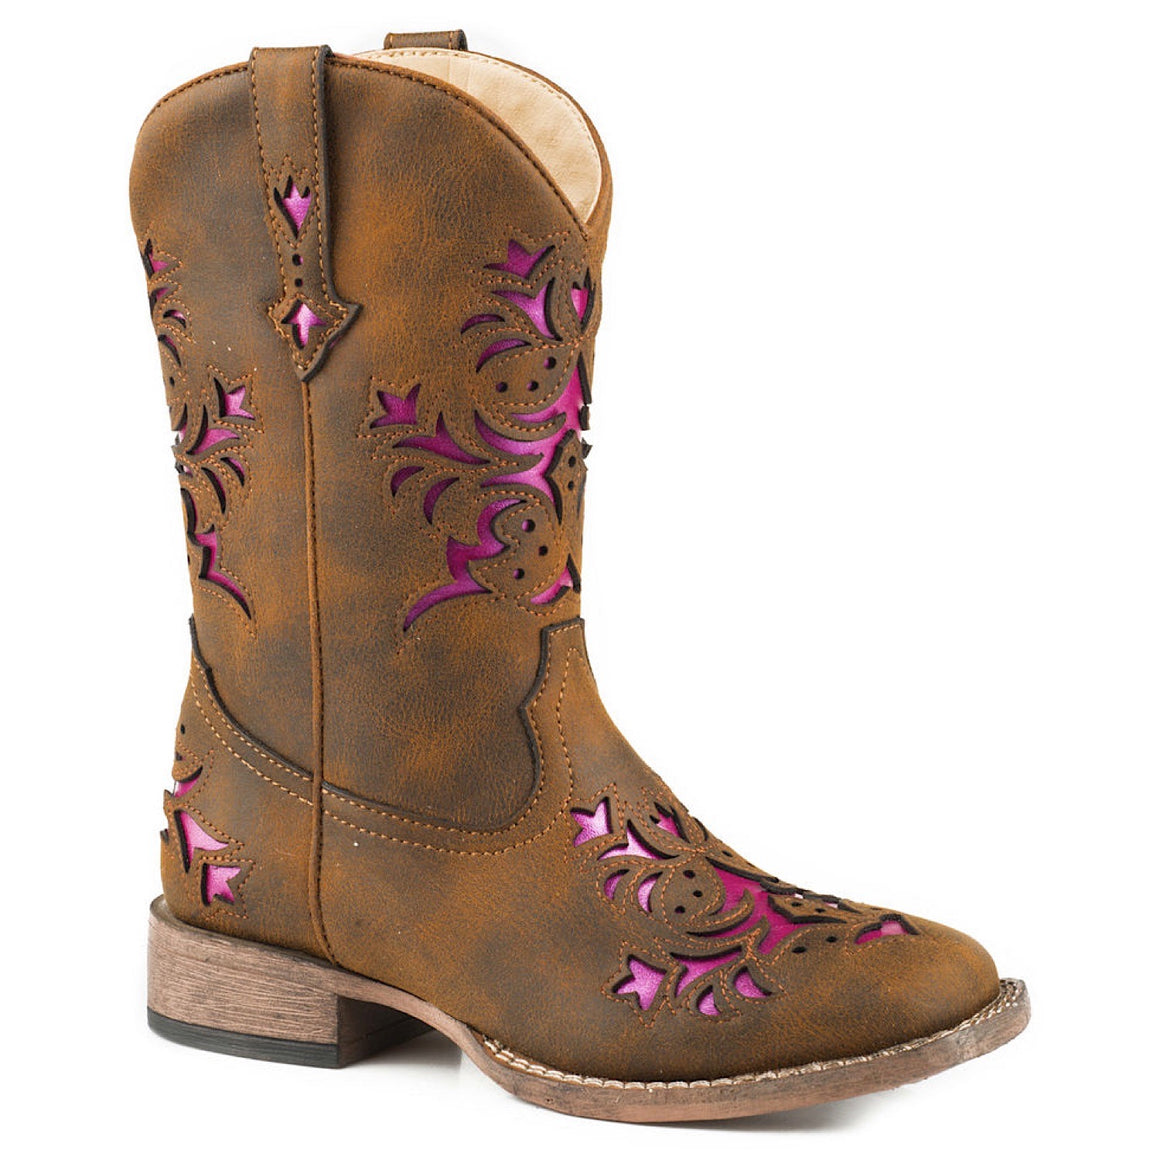 Roper Little Kids Lola Brown Pink Metallic Underlay Boots